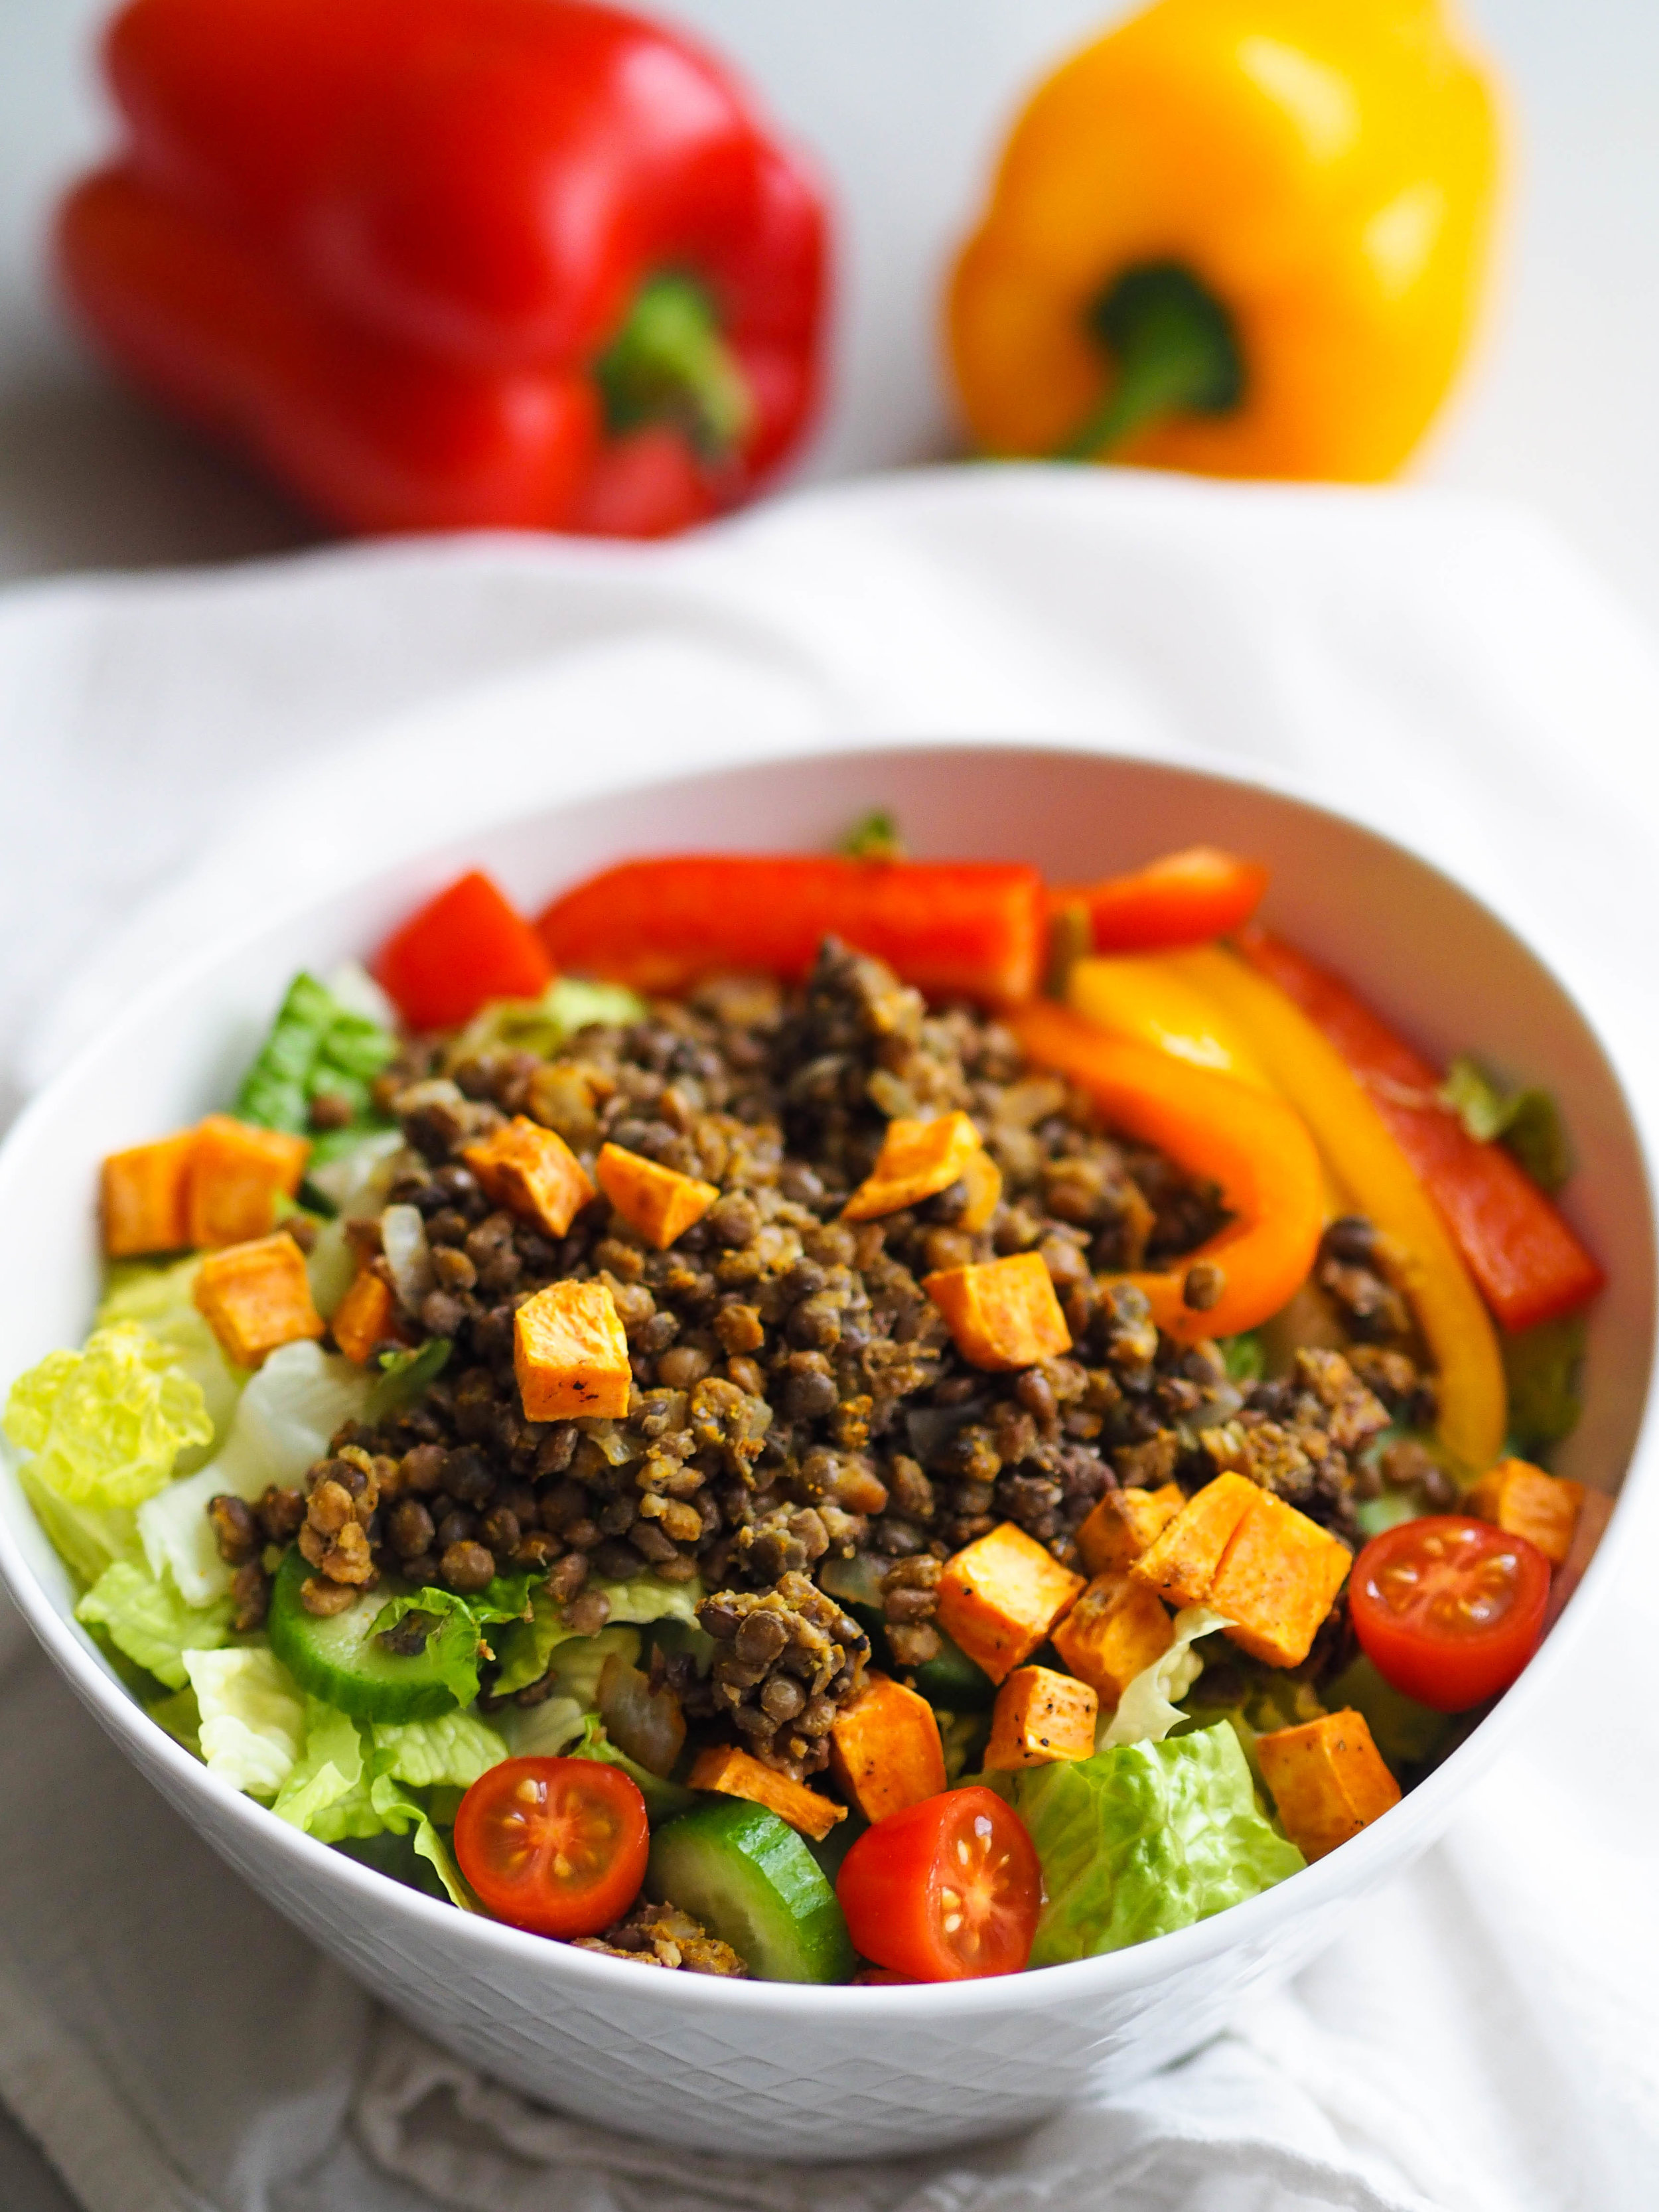 Curry Lentil and Sweet Potato Salad with Crunchy Salad Mix